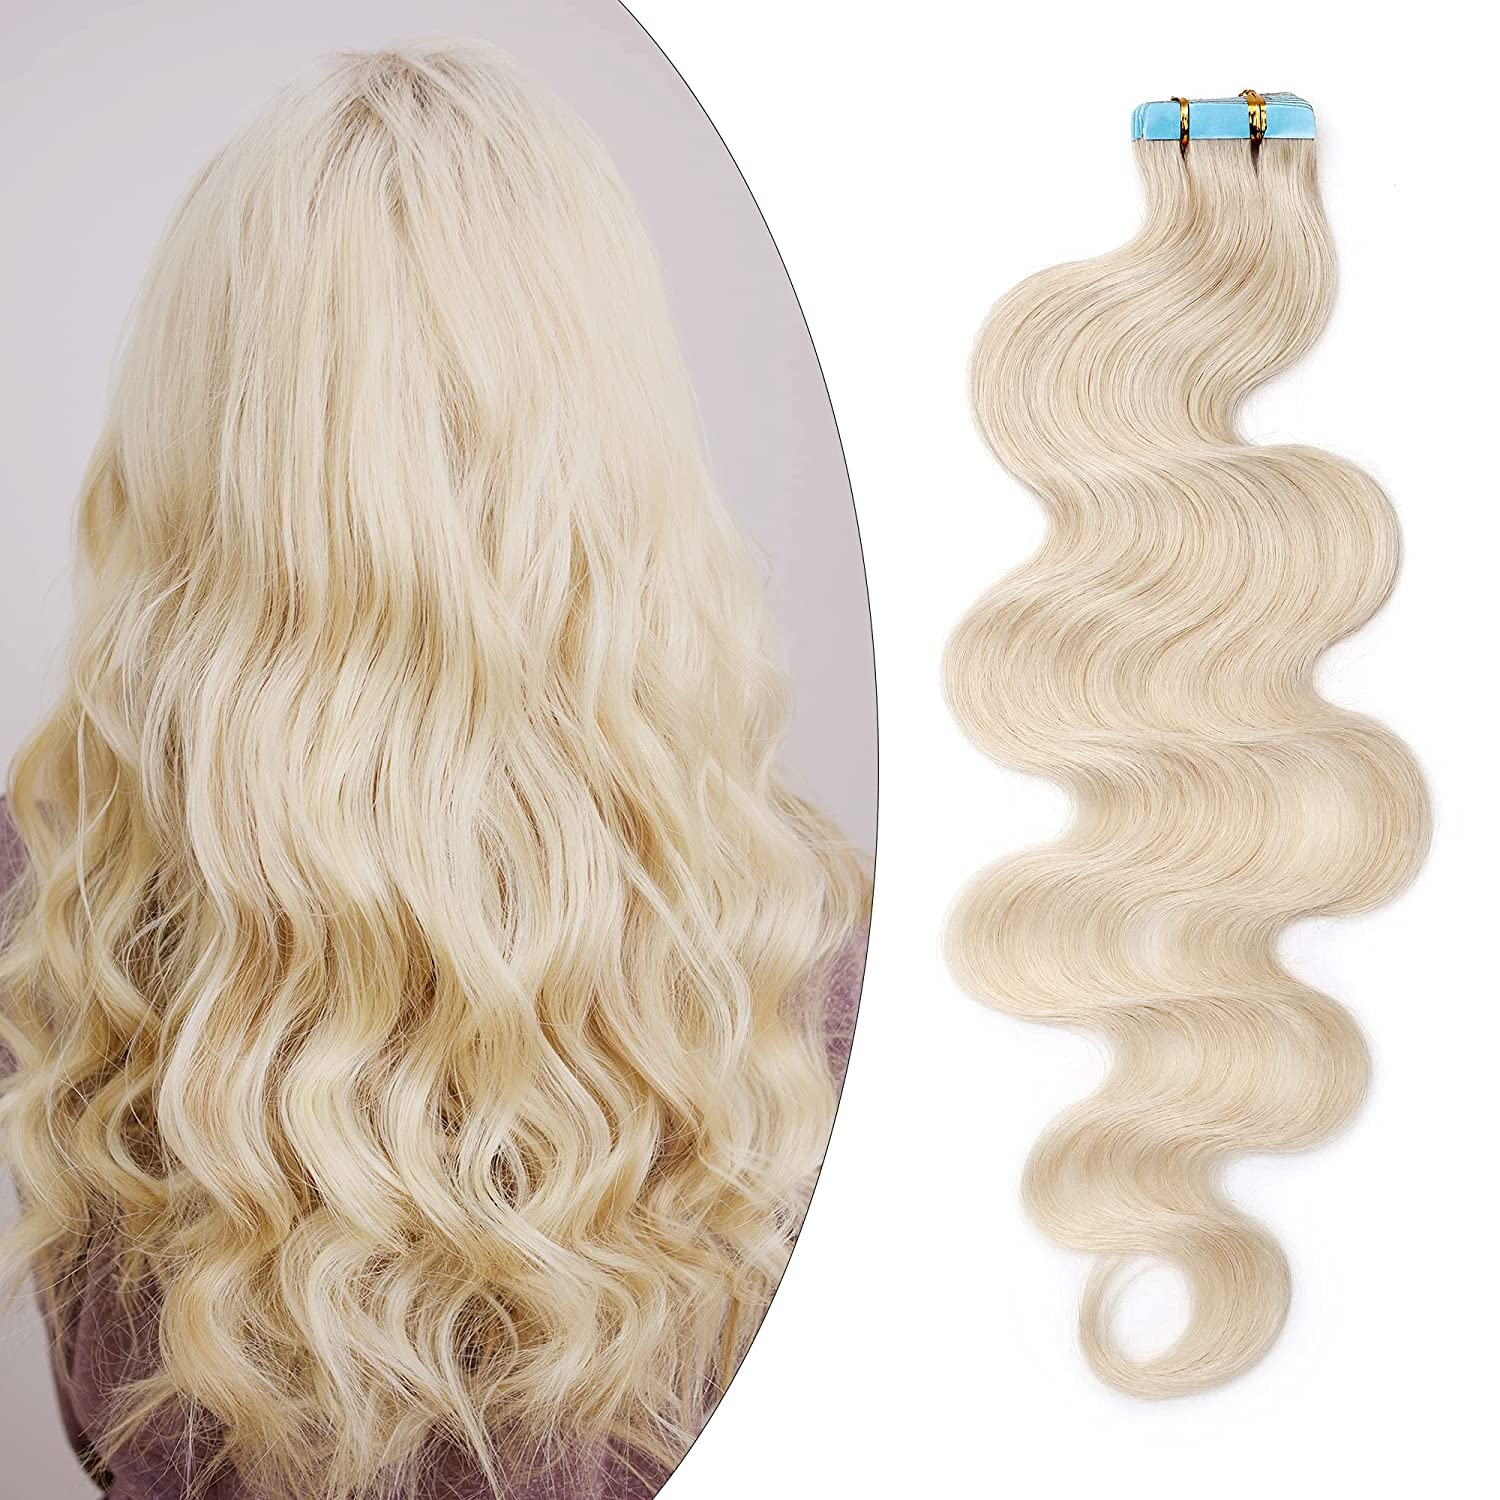 SEGO 22 Inch 67% OFF of fixed price Tape In Hair Blonde-Bod 20pcs 50g White Beauty products Extensions